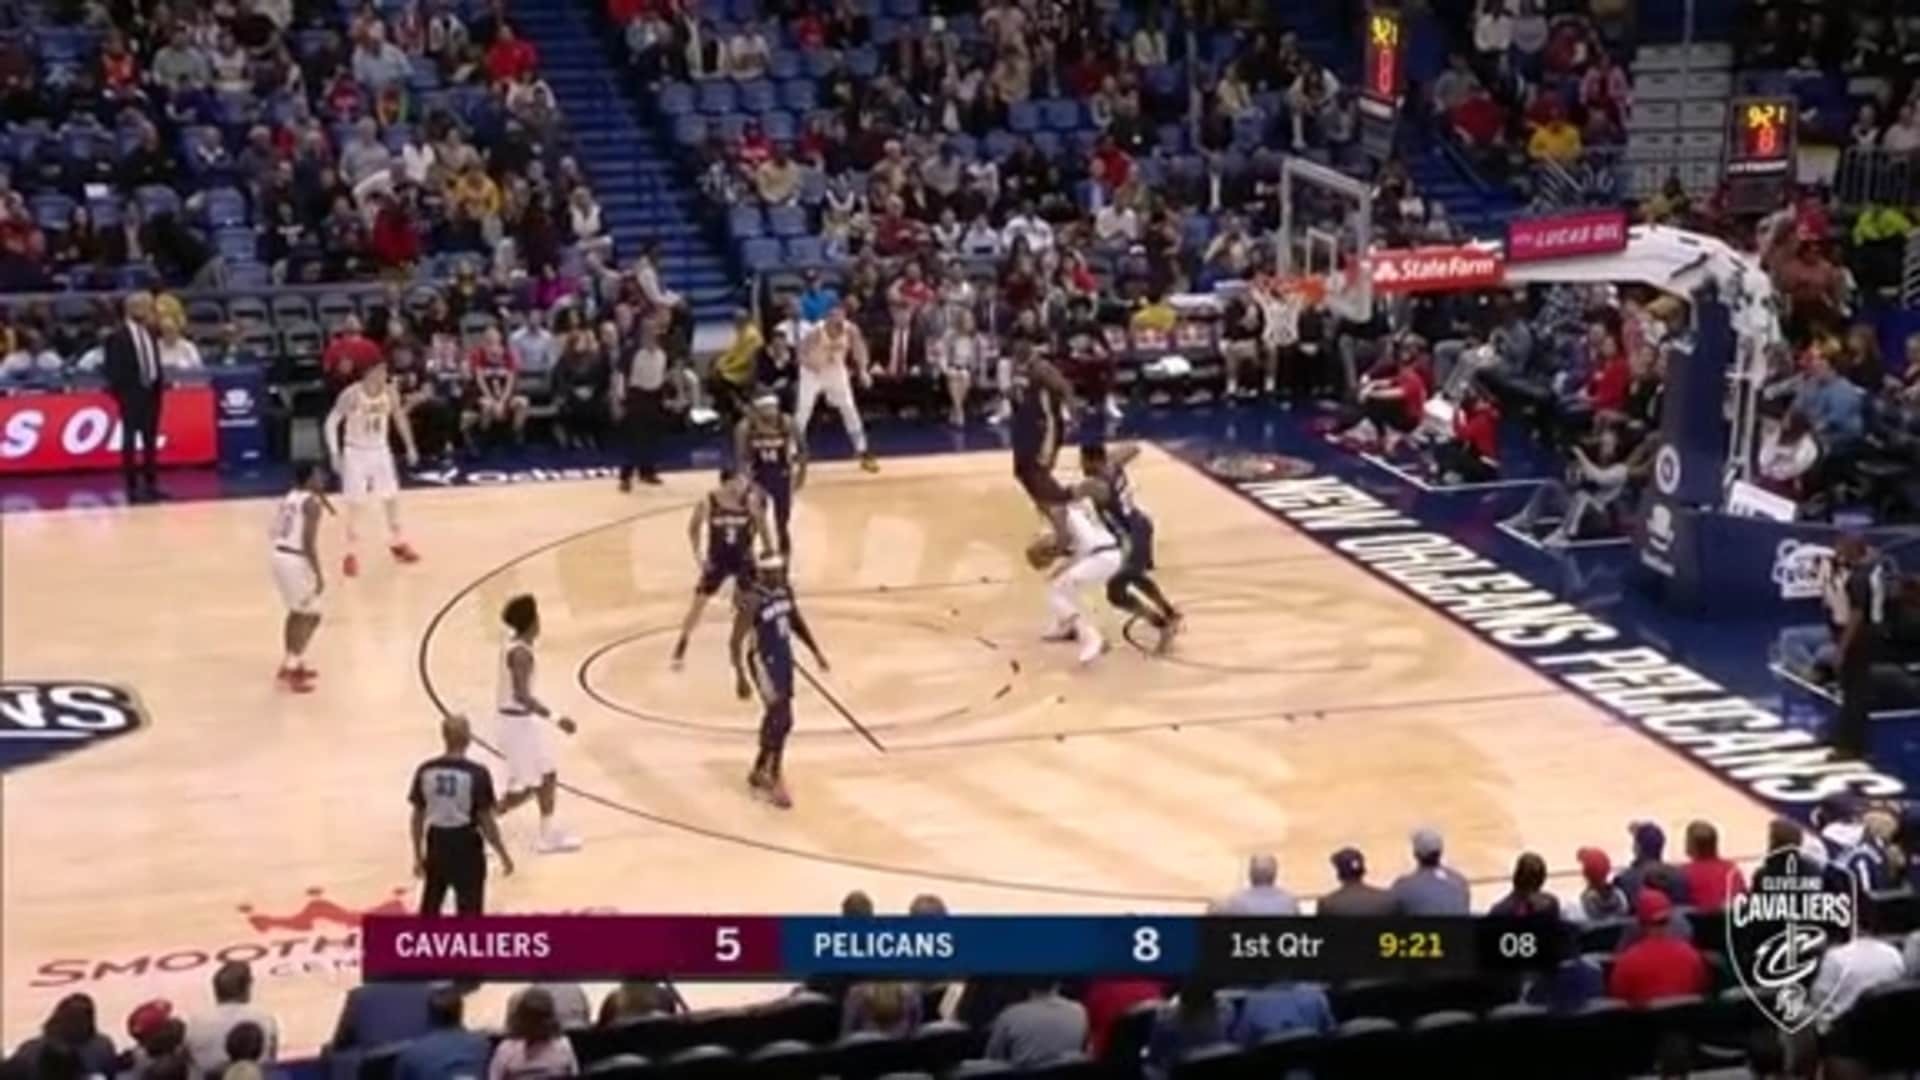 Thompson Gets Inside, Spins, and Scores